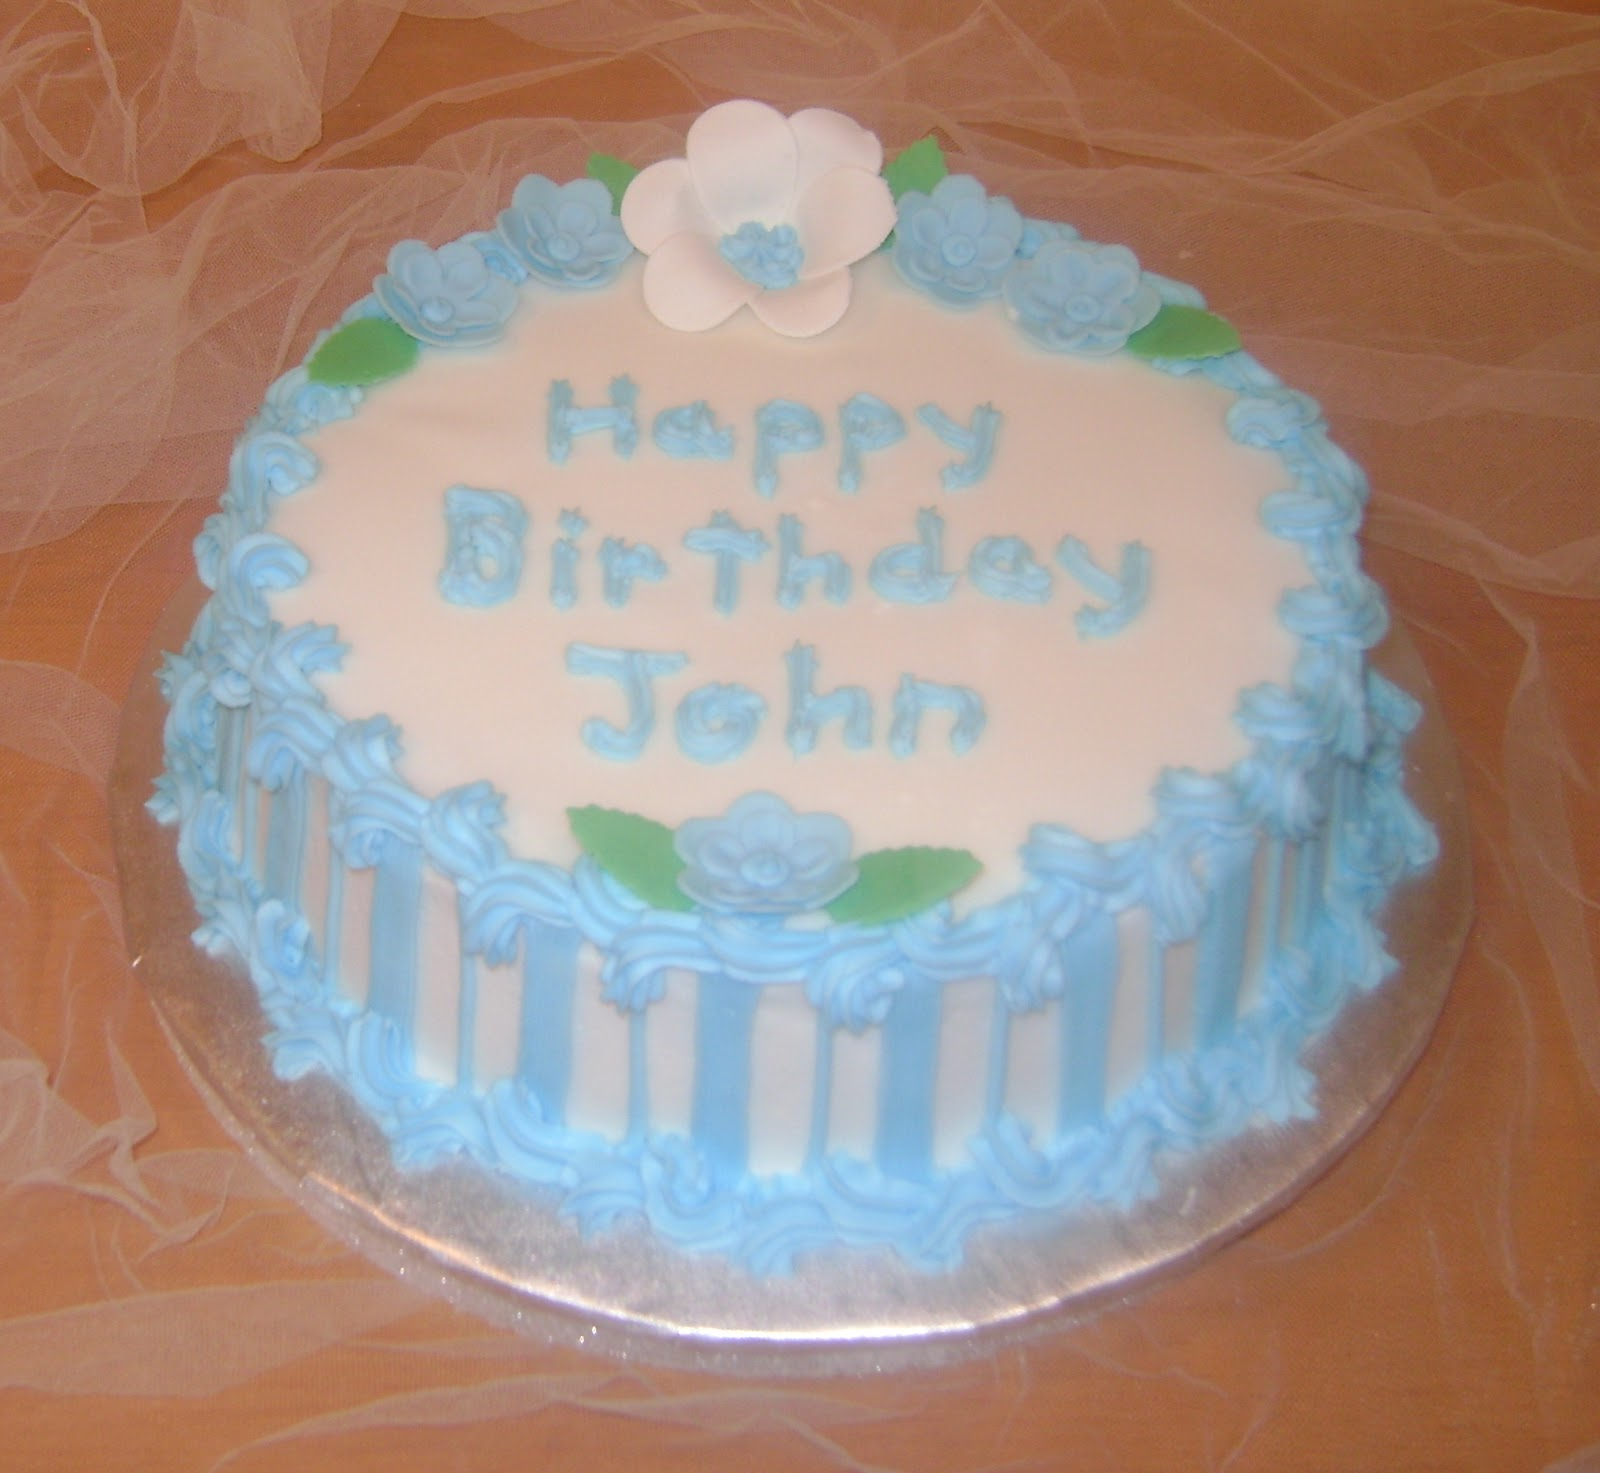 Birthday Cake For John : Marilyn s Caribbean Cakes: Happy Birthday John!